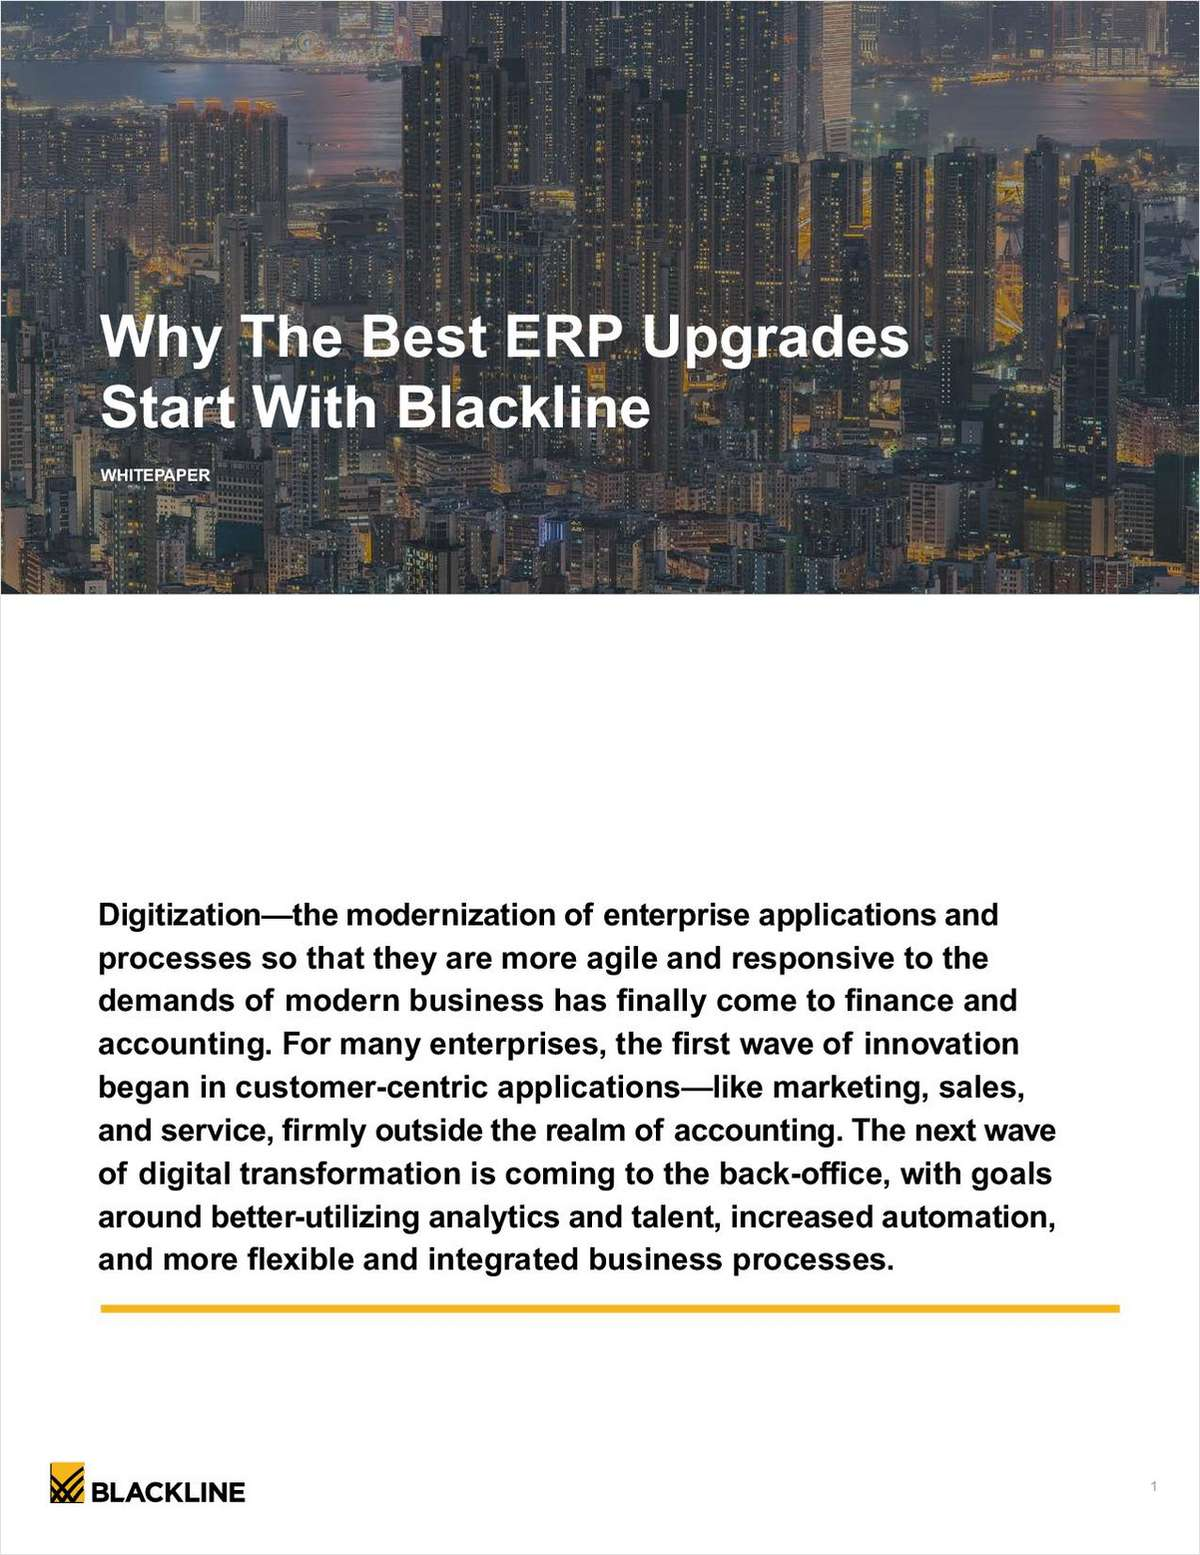 Why The Best ERP Upgrades Start with BlackLine